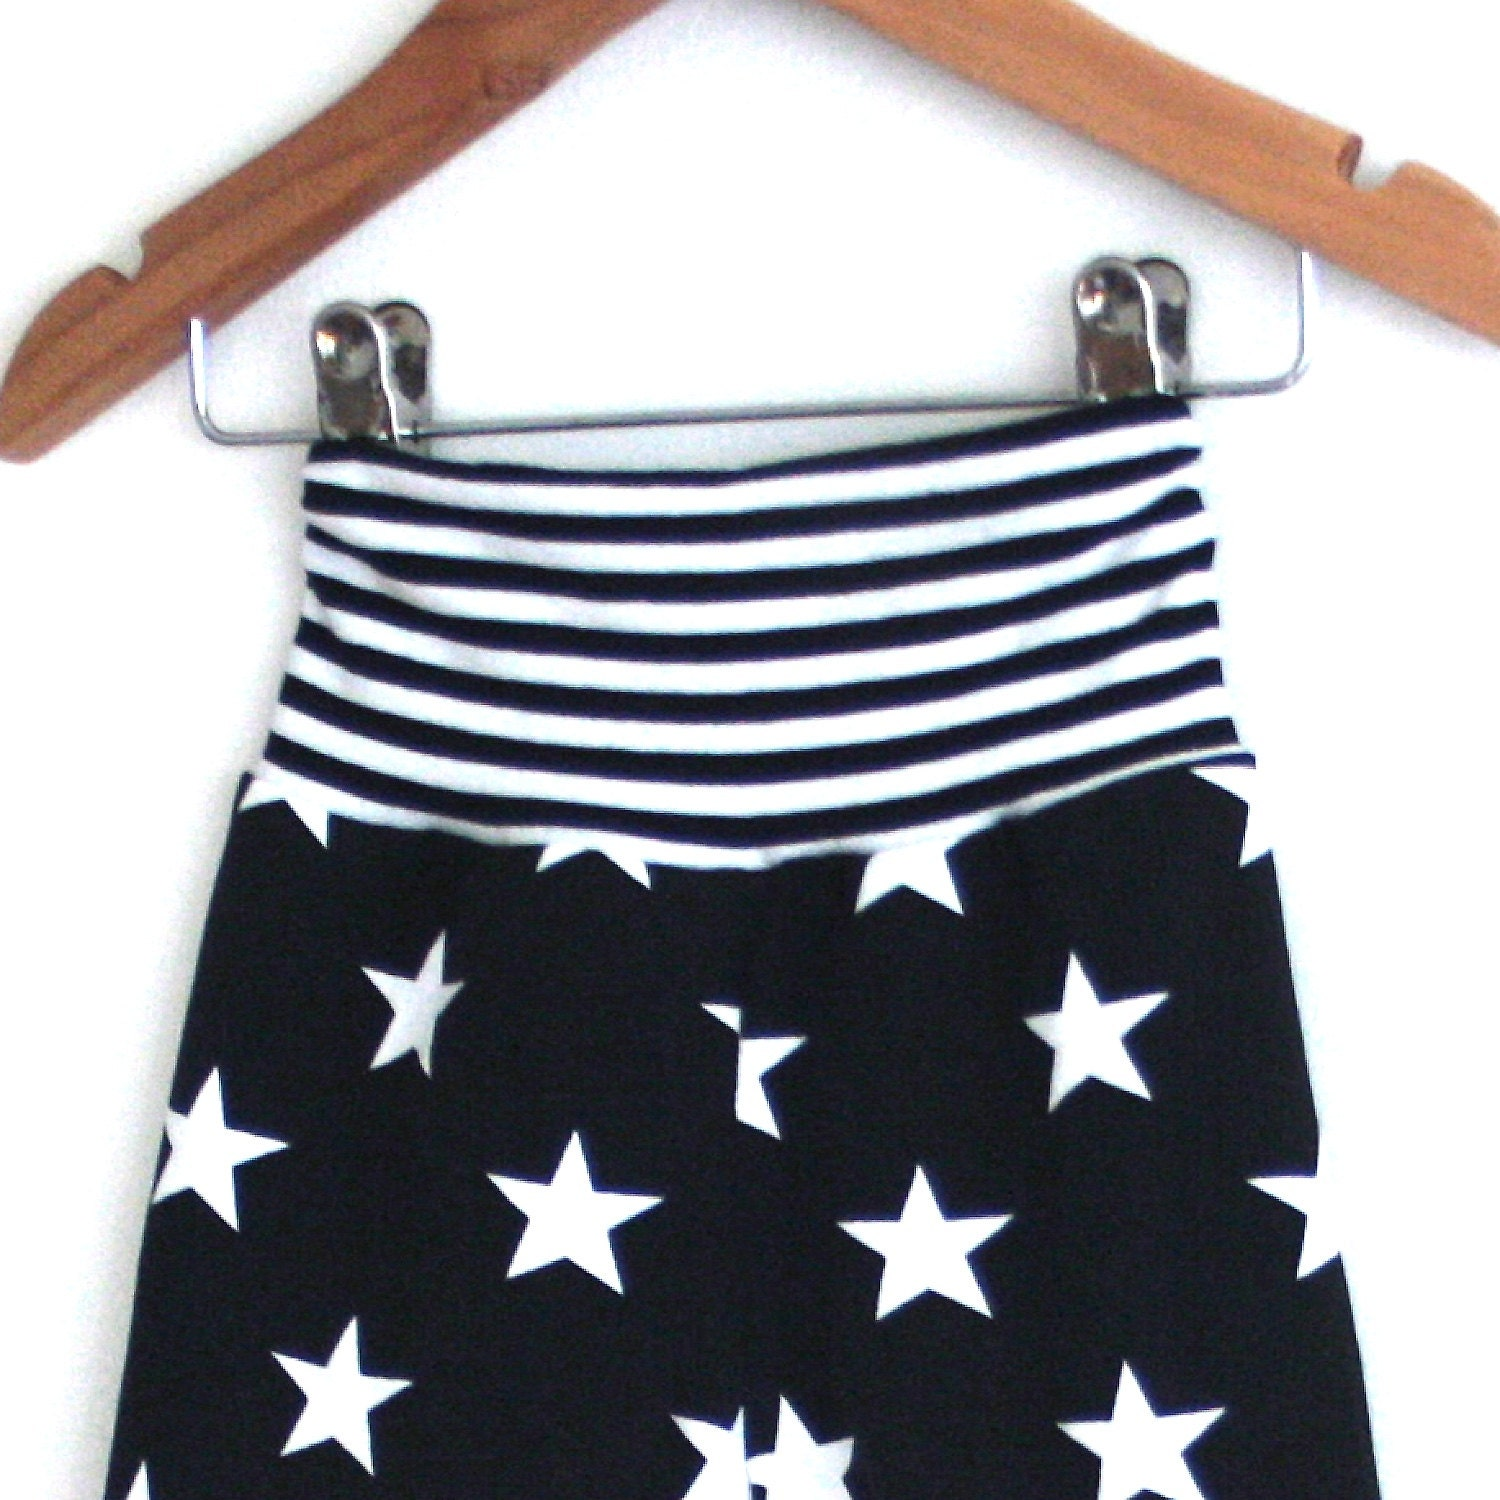 Baby Boy Leggings Baby Leggings Baby Boy Newborn Baby Unisex Baby Stars Leggings Toddler Leggings Stars Baby Gift Set